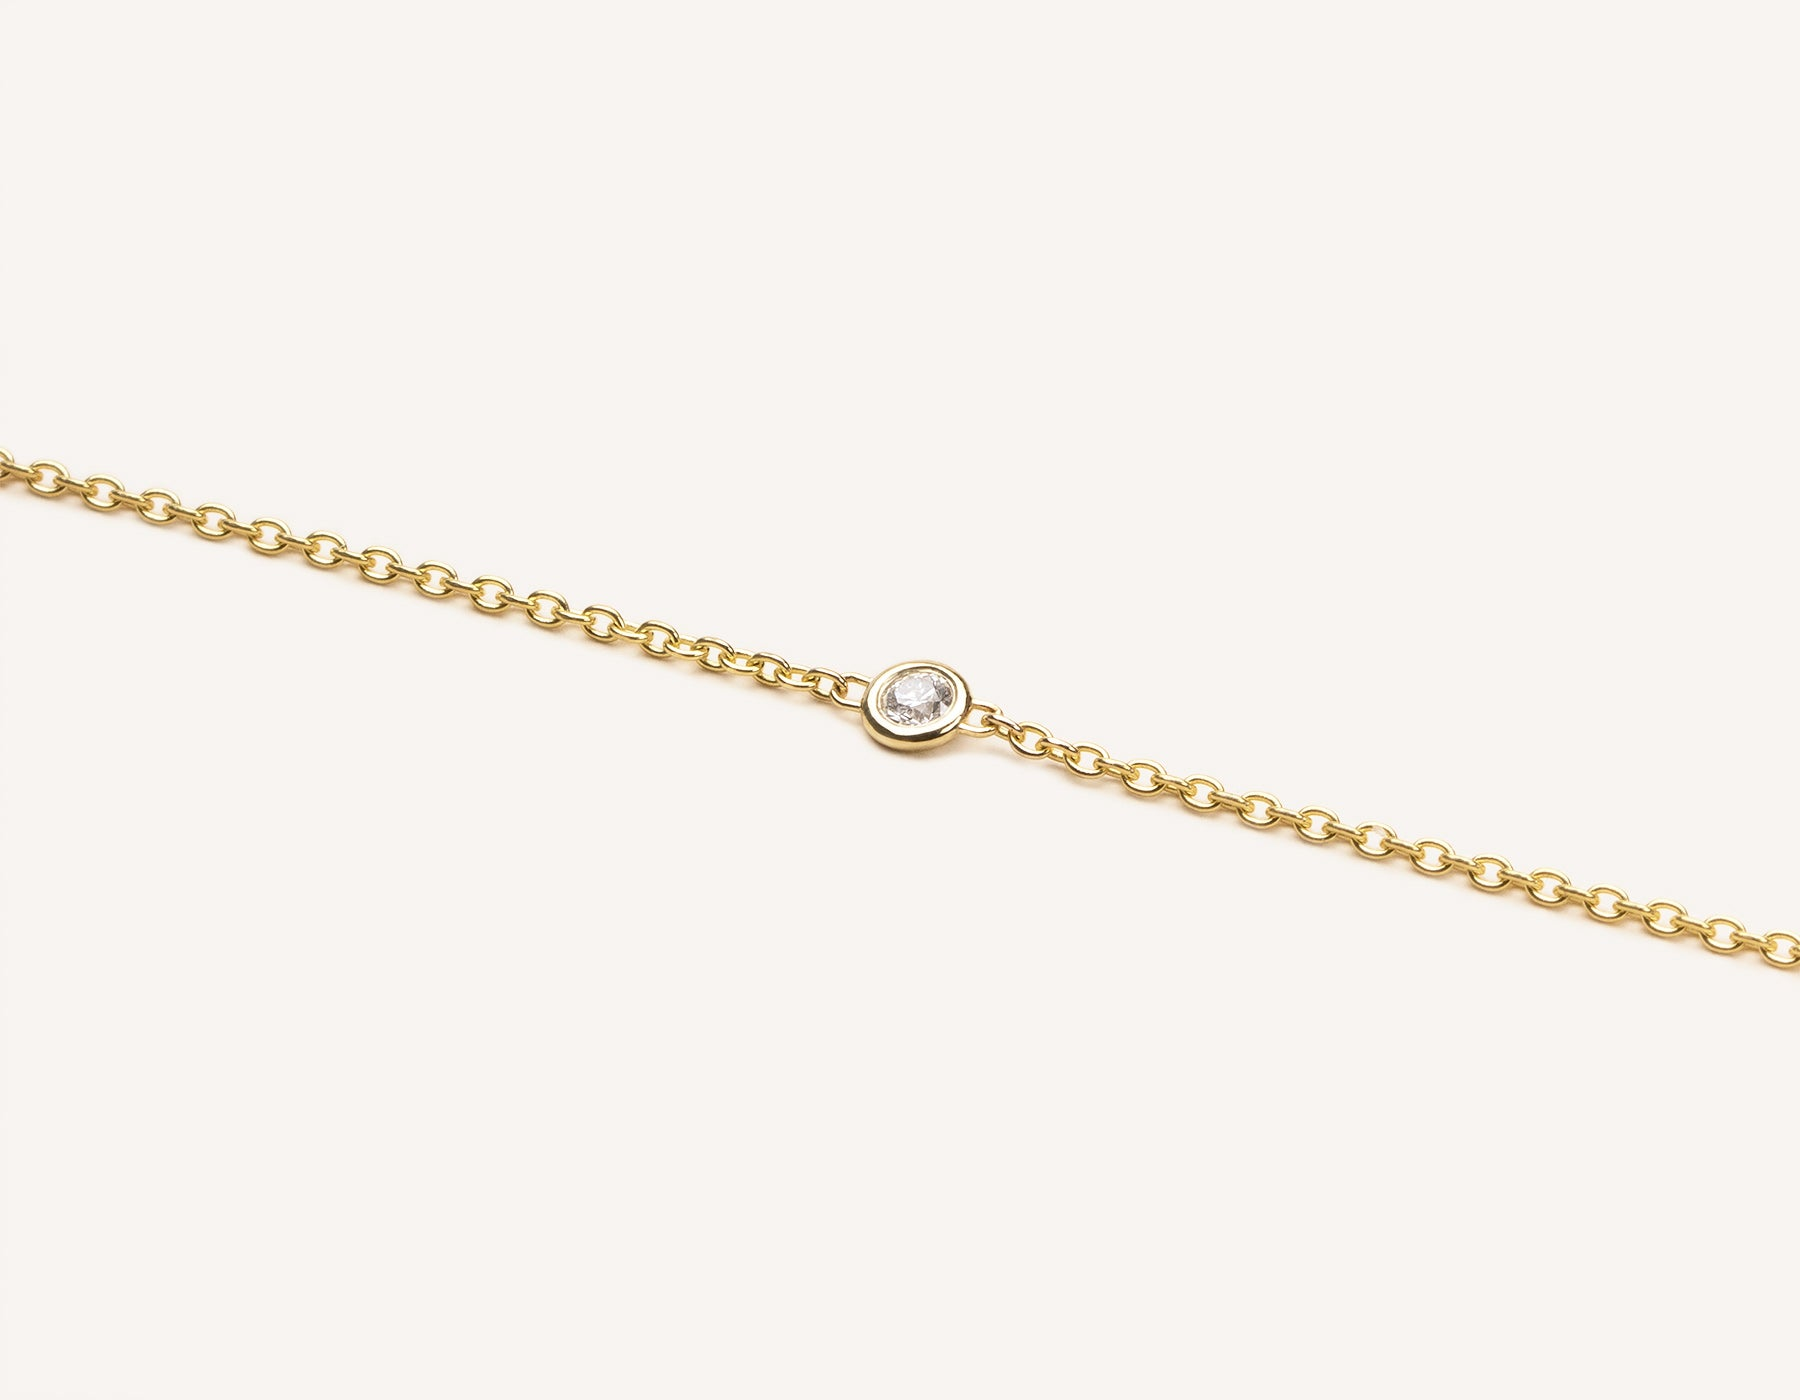 Simple classic 14k solid gold .04 carat round brilliant cut Solitaire Diamond Bracelet on delicate chain Vrai & Oro, 14K Yellow Gold